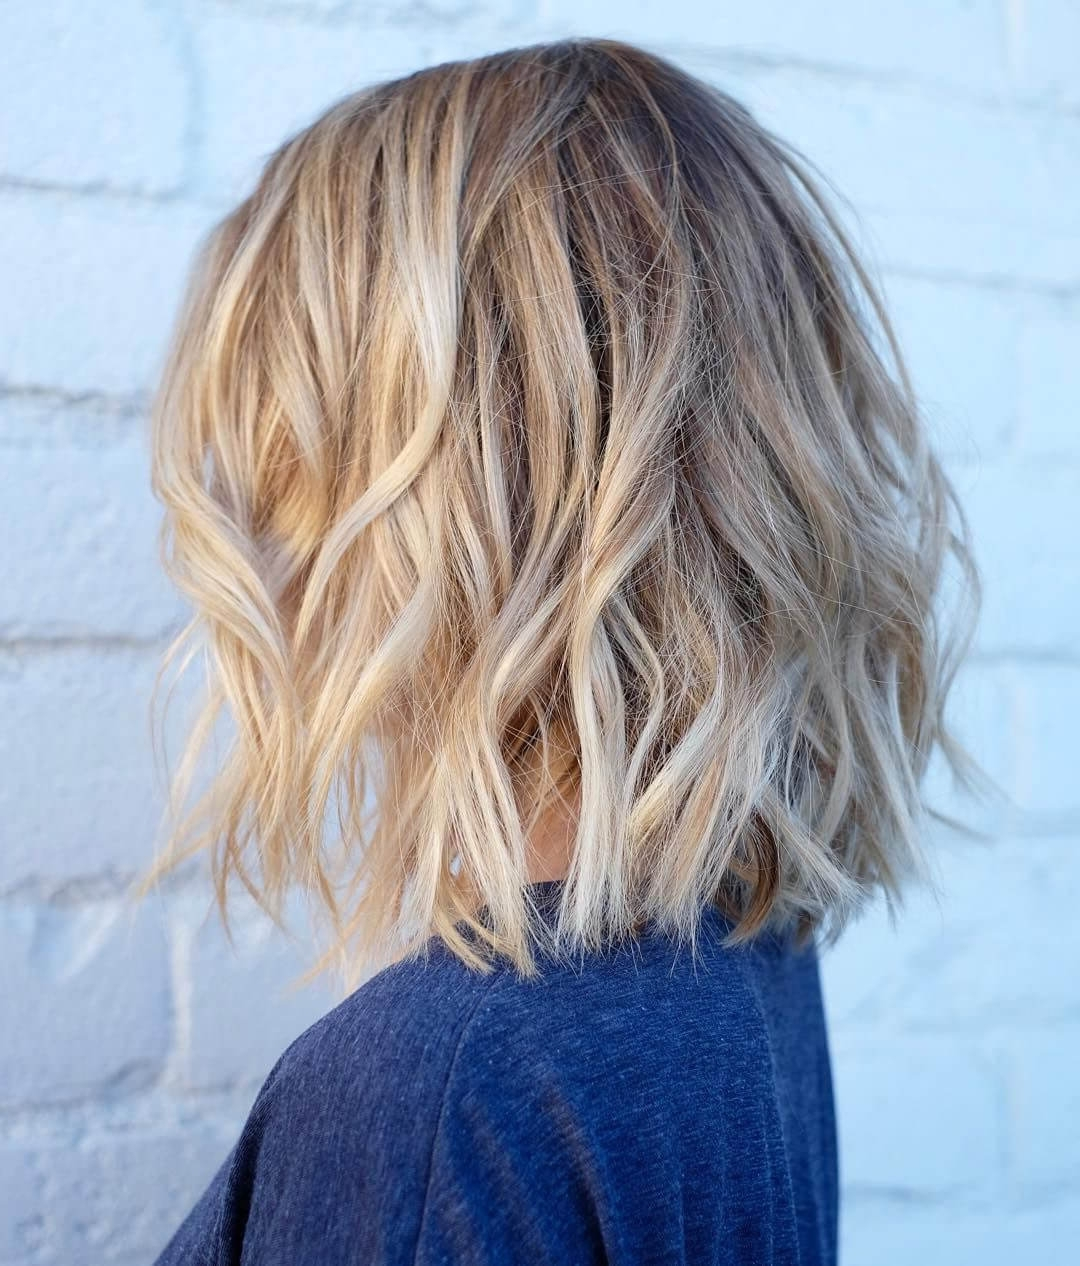 50 Fresh Short Blonde Hair Ideas To Update Your Style In 2018 Throughout Most Recently Released Textured Medium Length Look Blonde Hairstyles (View 4 of 20)